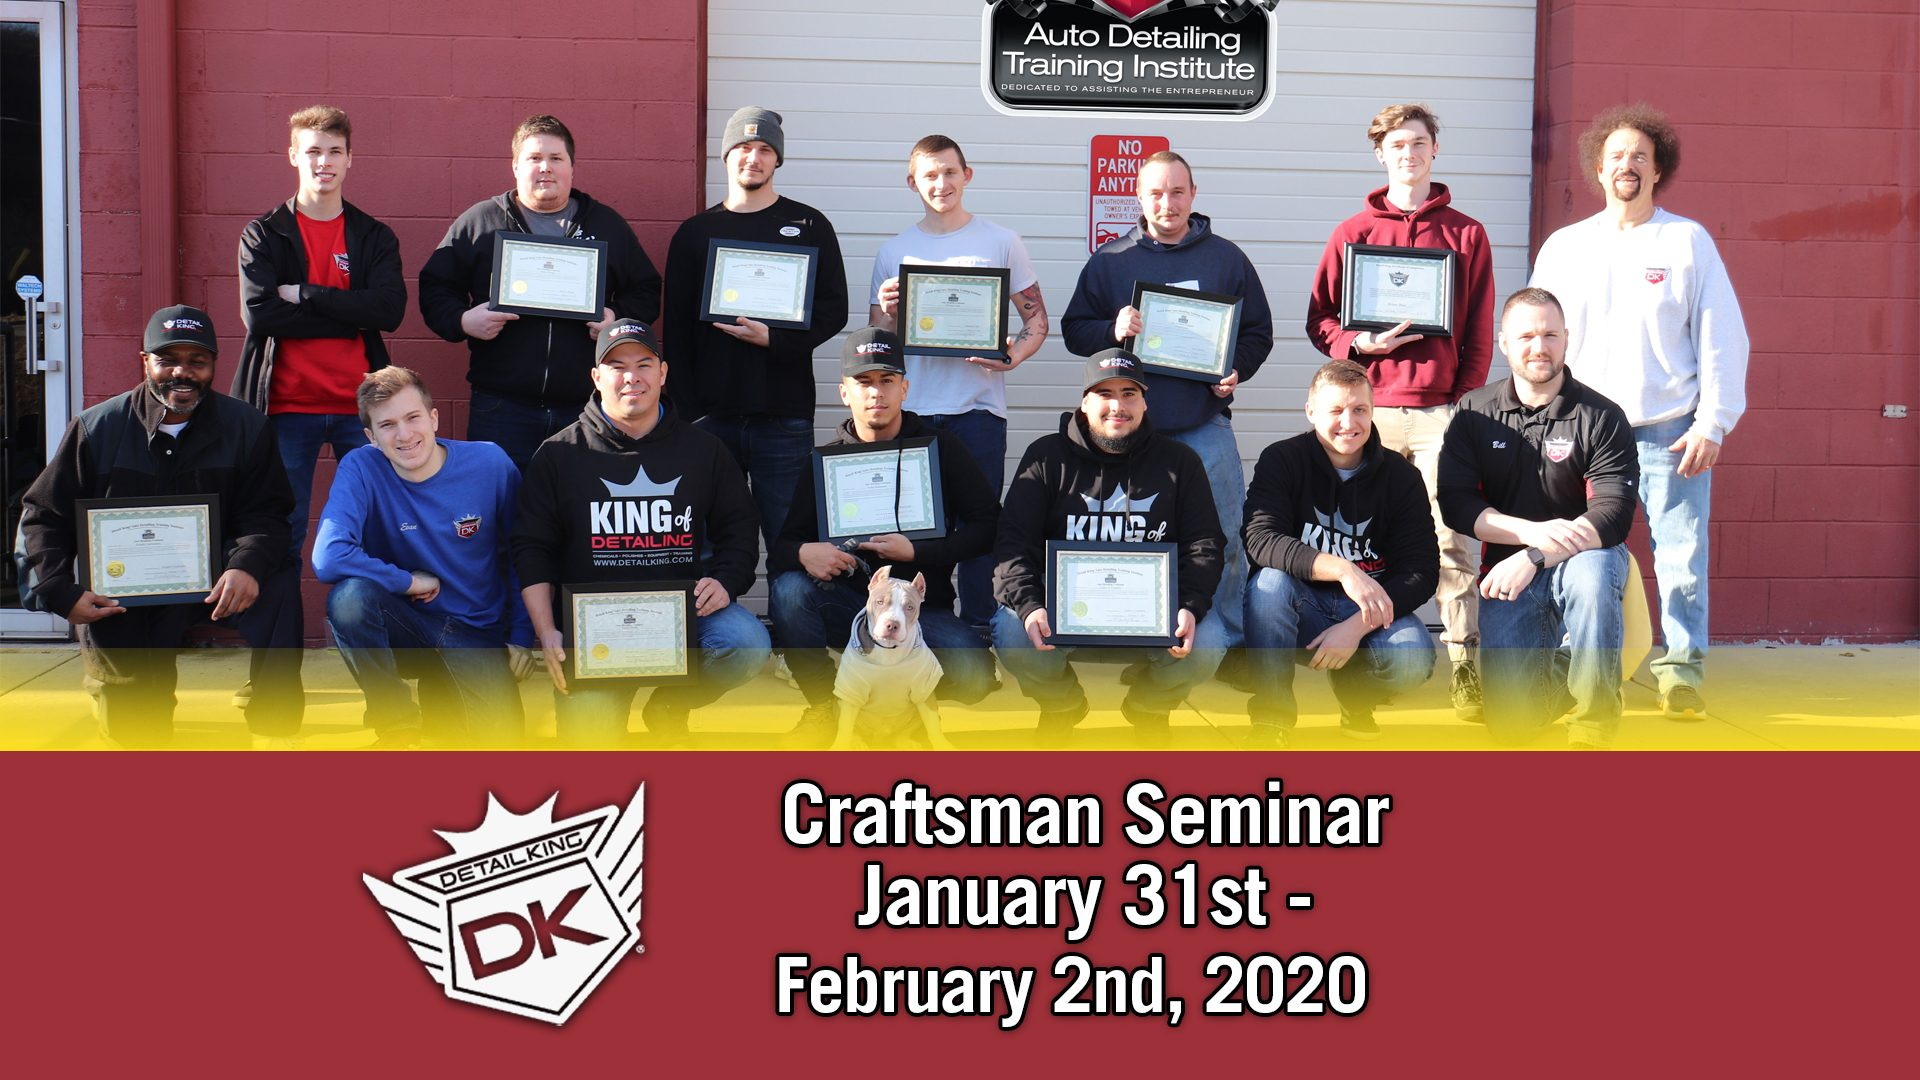 February 2nd 2020 Craftsman Seminar